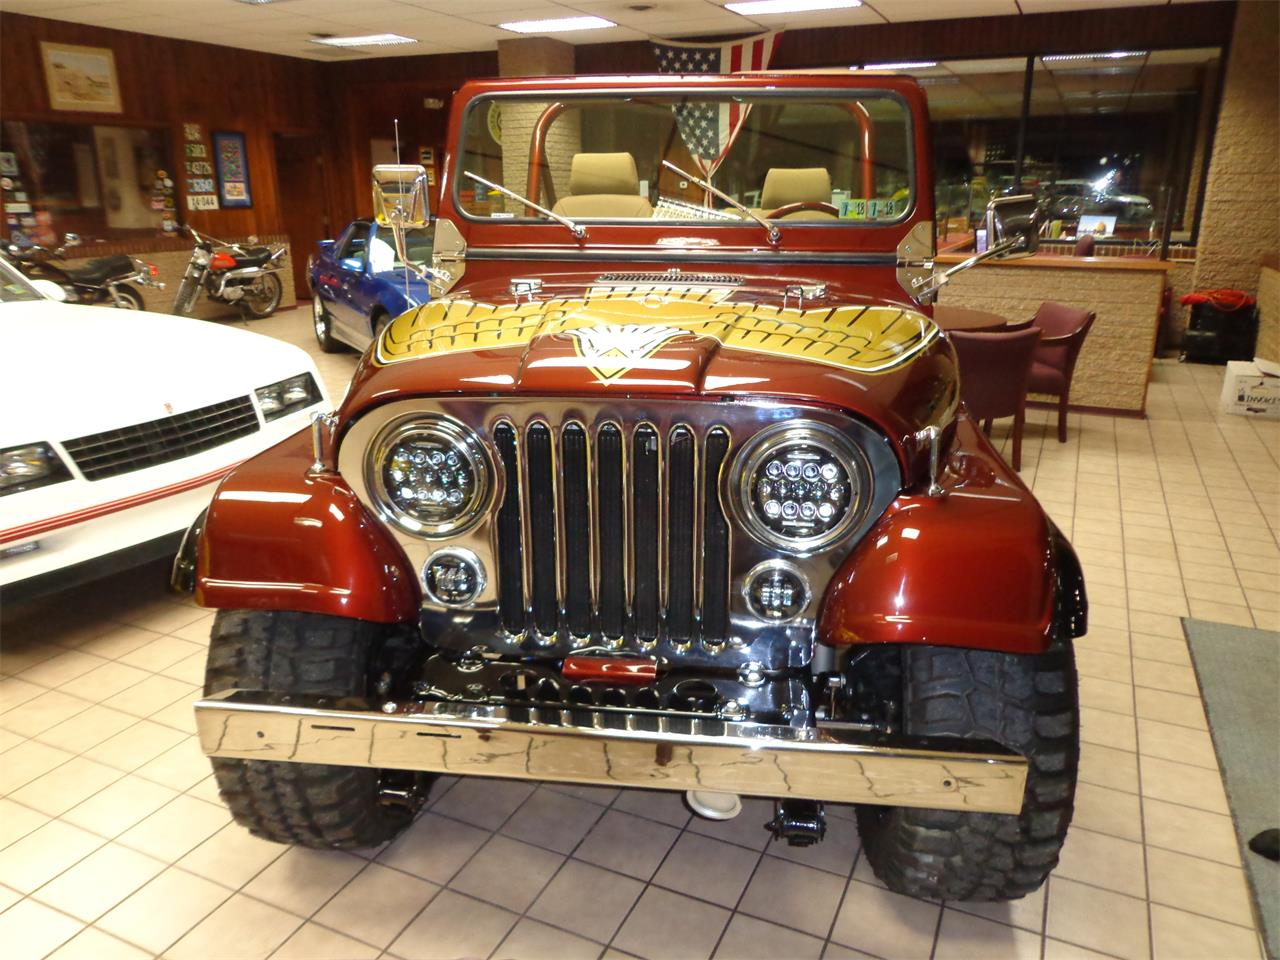 Large Picture of '79 CJ5 located in MILL HALL Pennsylvania - $40,500.00 Offered by Miller Brothers Auto Sales Inc - MU6A